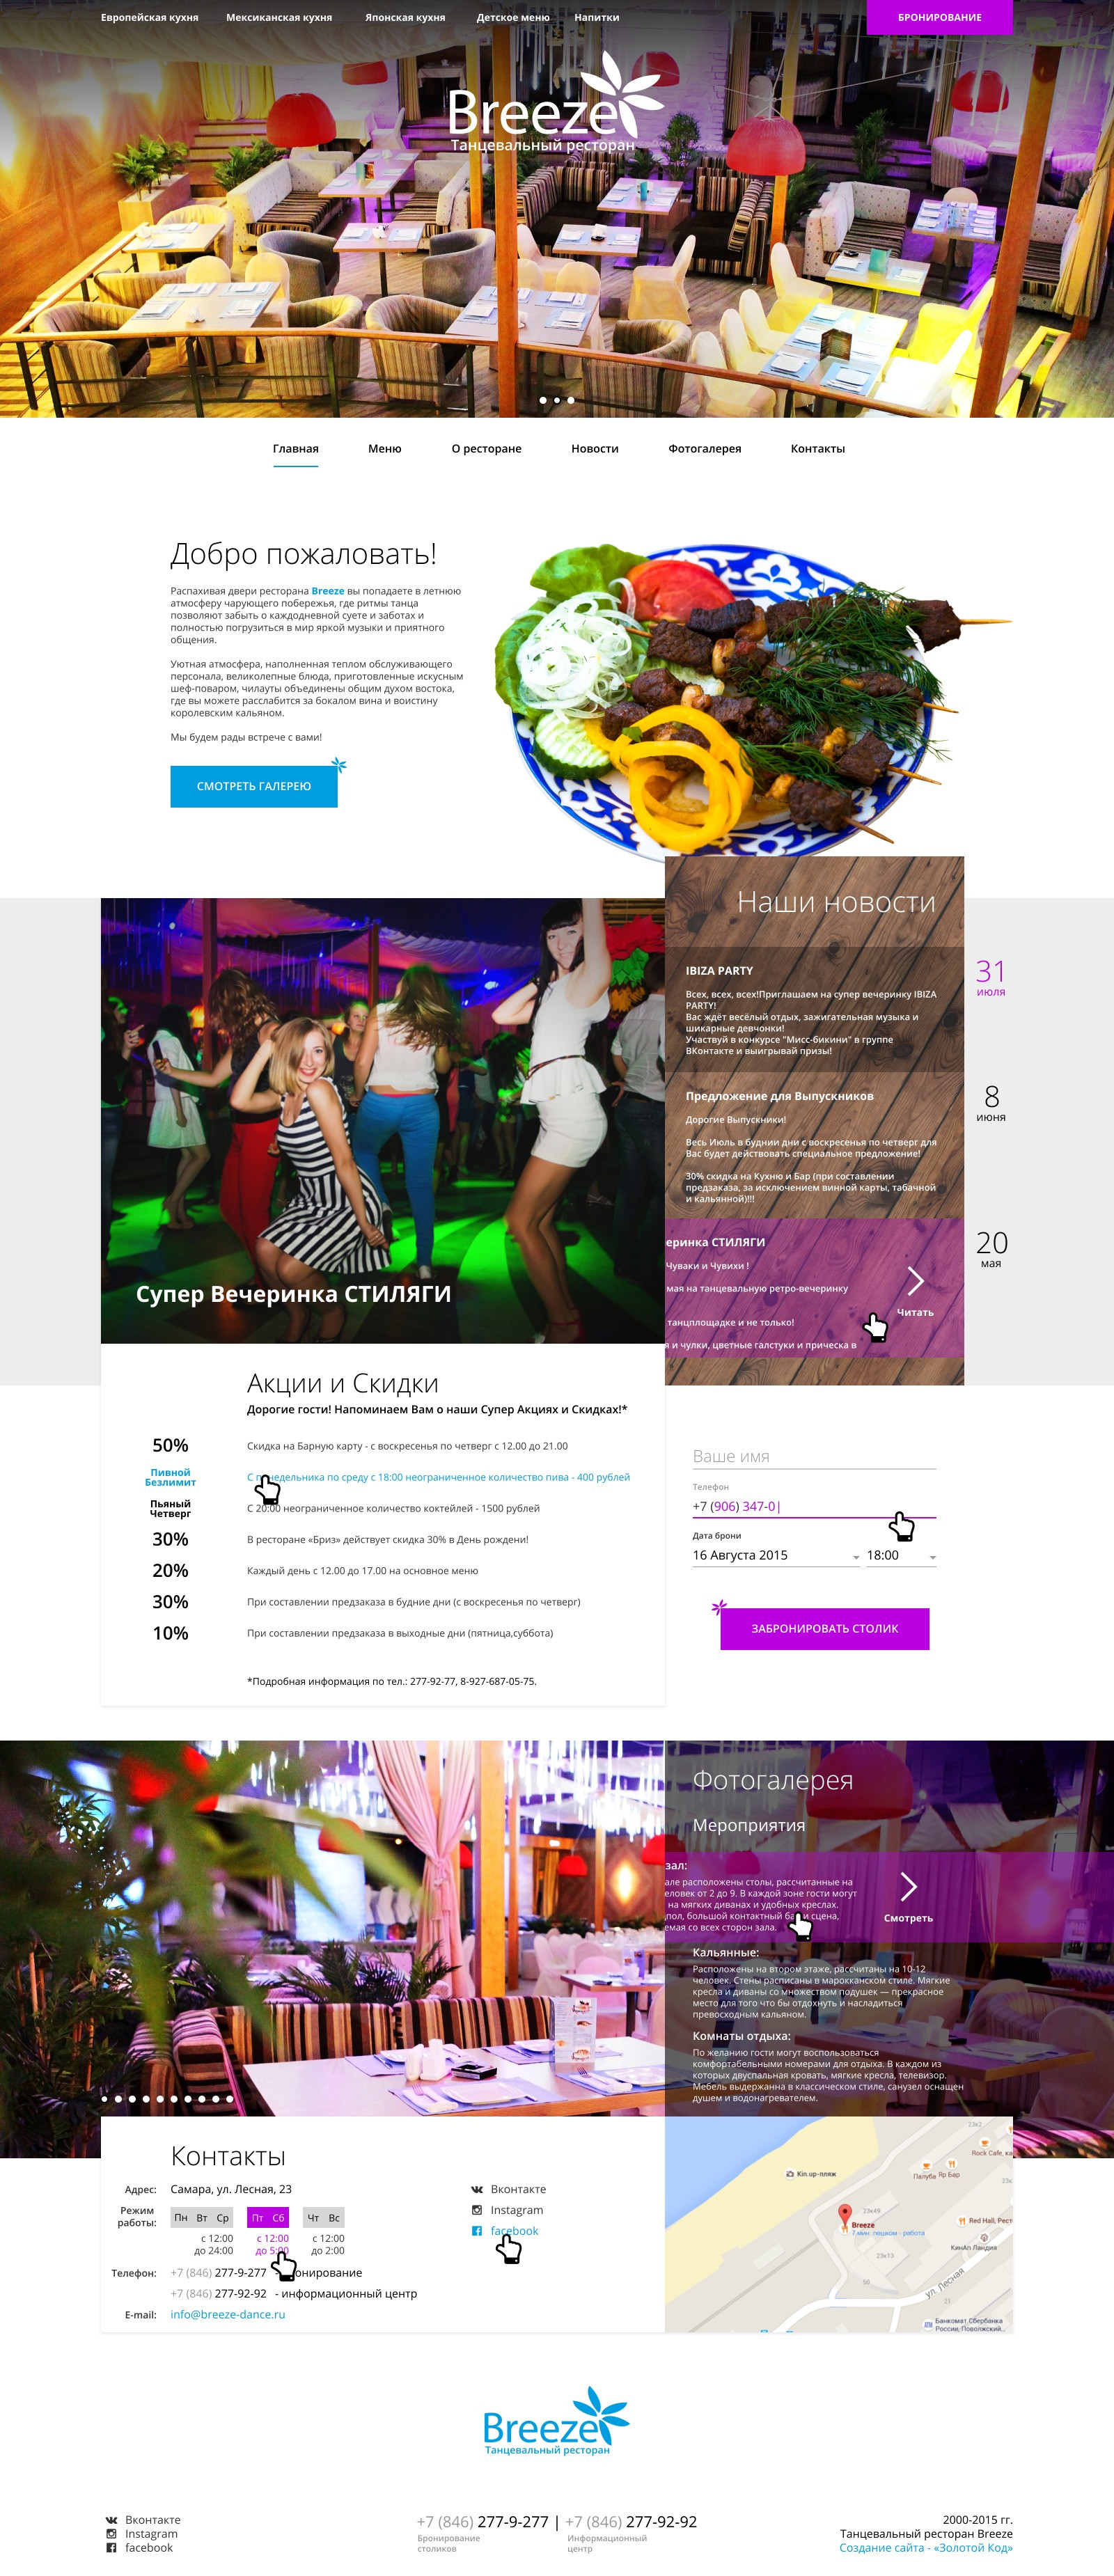 Breeze restaurant site concept